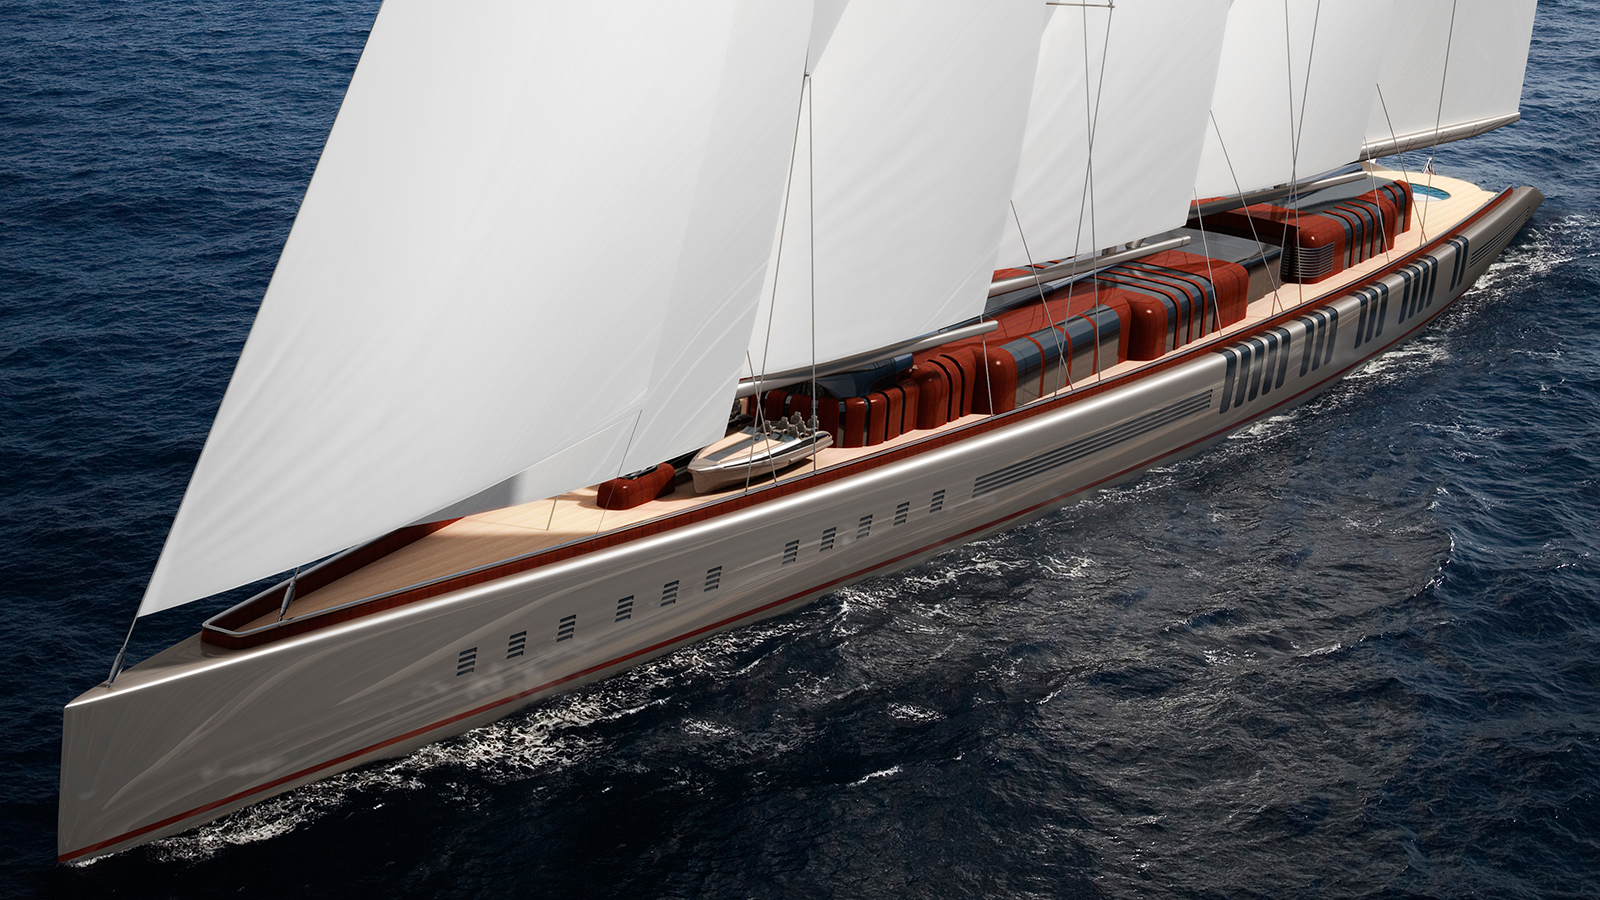 dream-symphony-is-one-of-the-most-hotly-anticipated-new-superyachts-of-2017